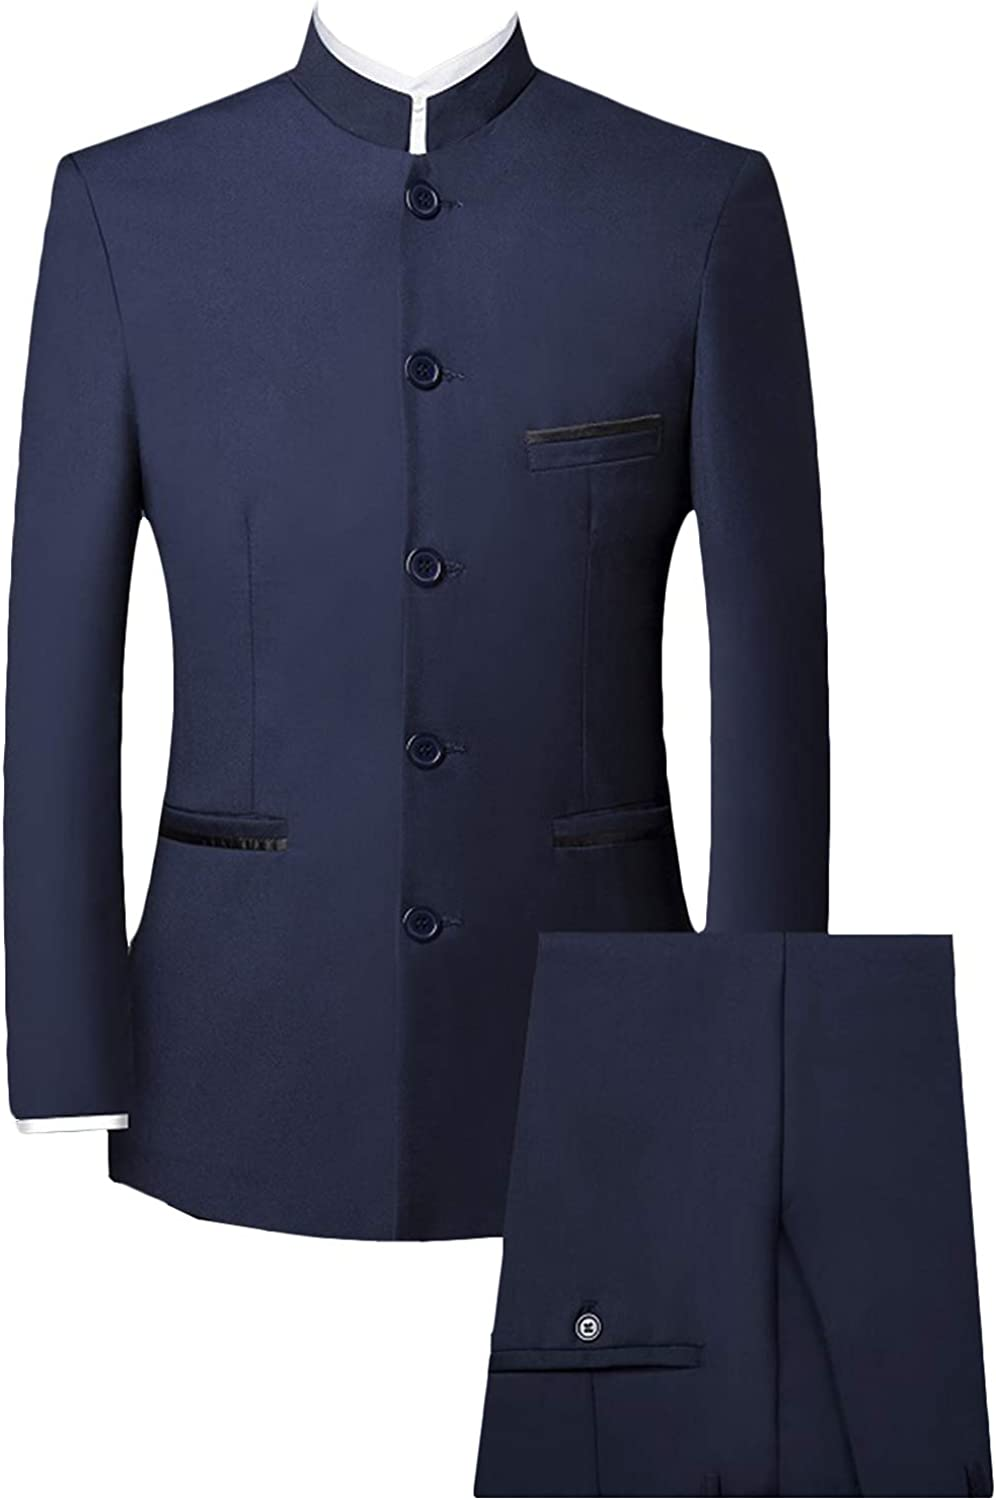 P&G Men's 3 Piece Suit Single Breasted Stand Lapel Business Wedding Tuxedo